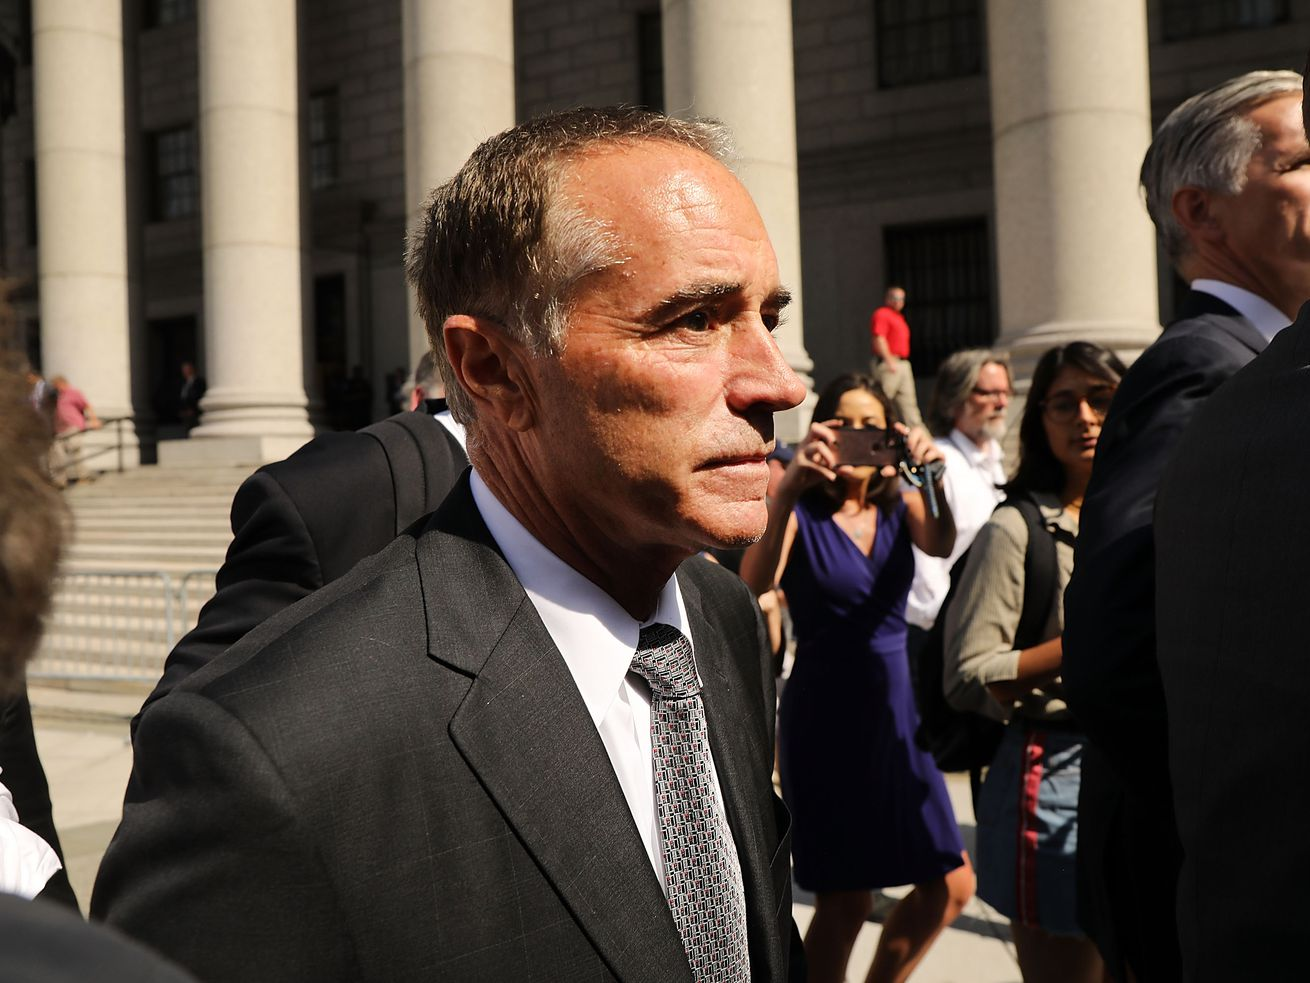 Rep. Chris Collins (R-NY) in August 2018.